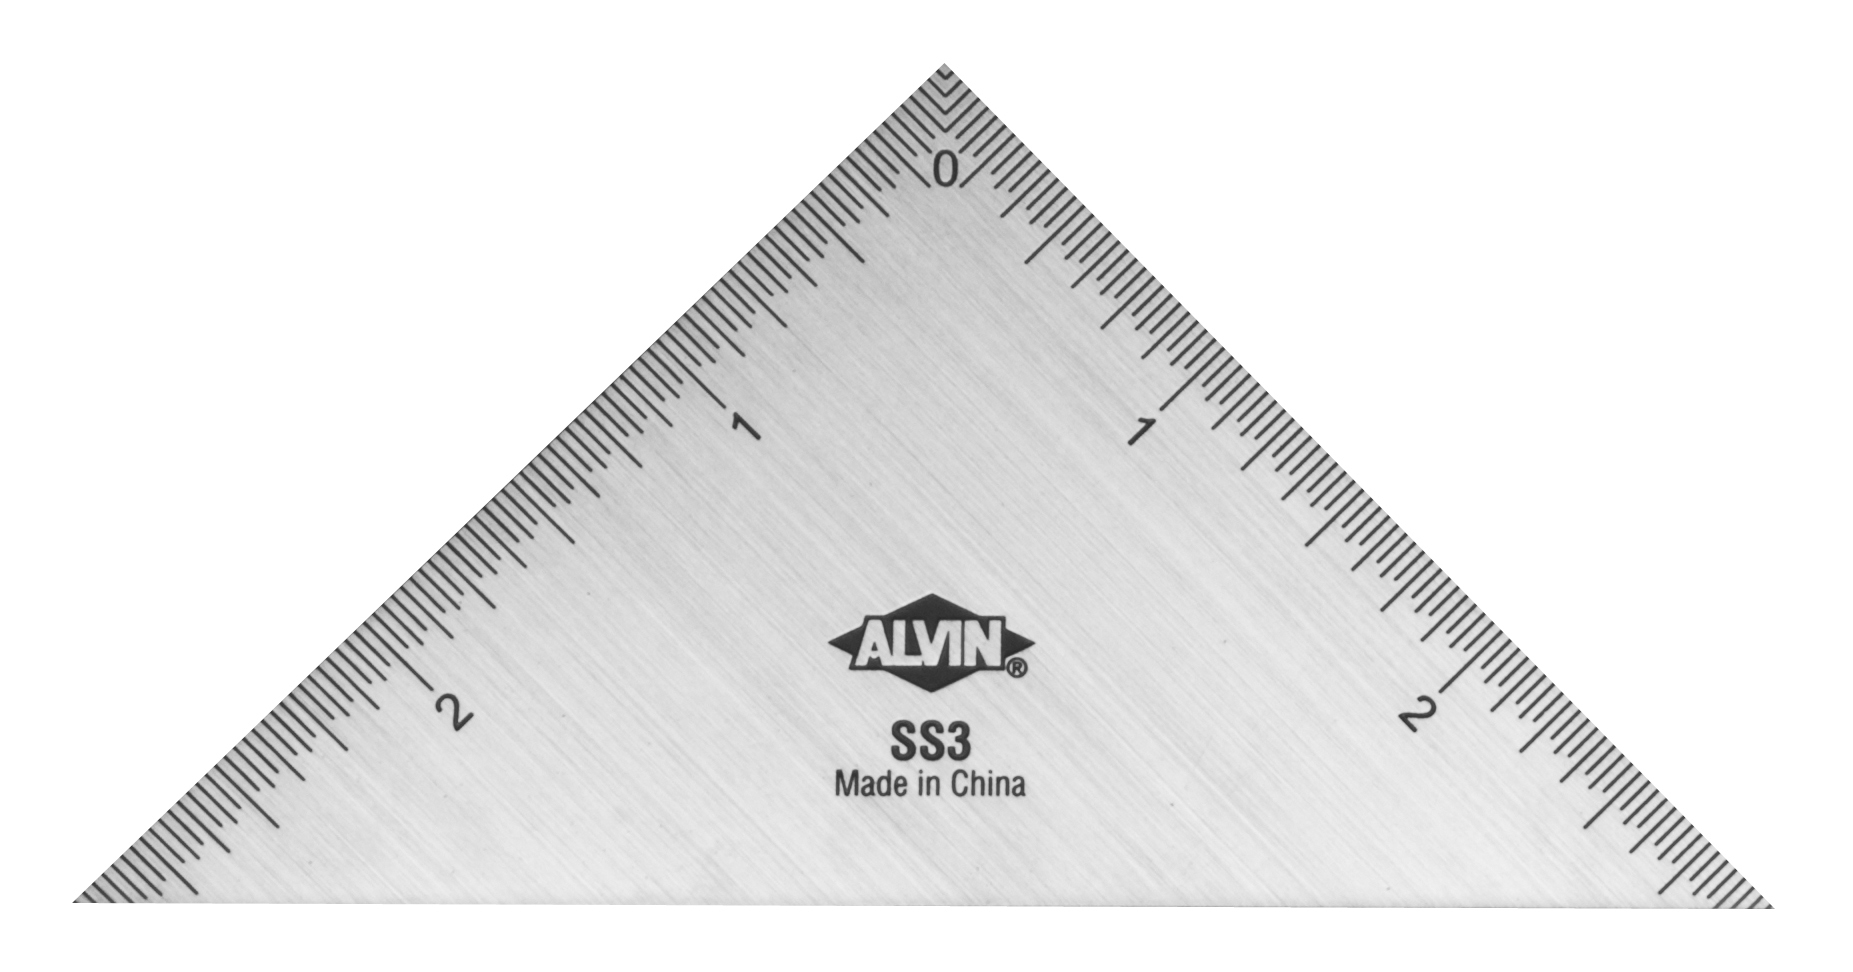 Alvin Stainless Steel Triangle Ruler 3 Inch